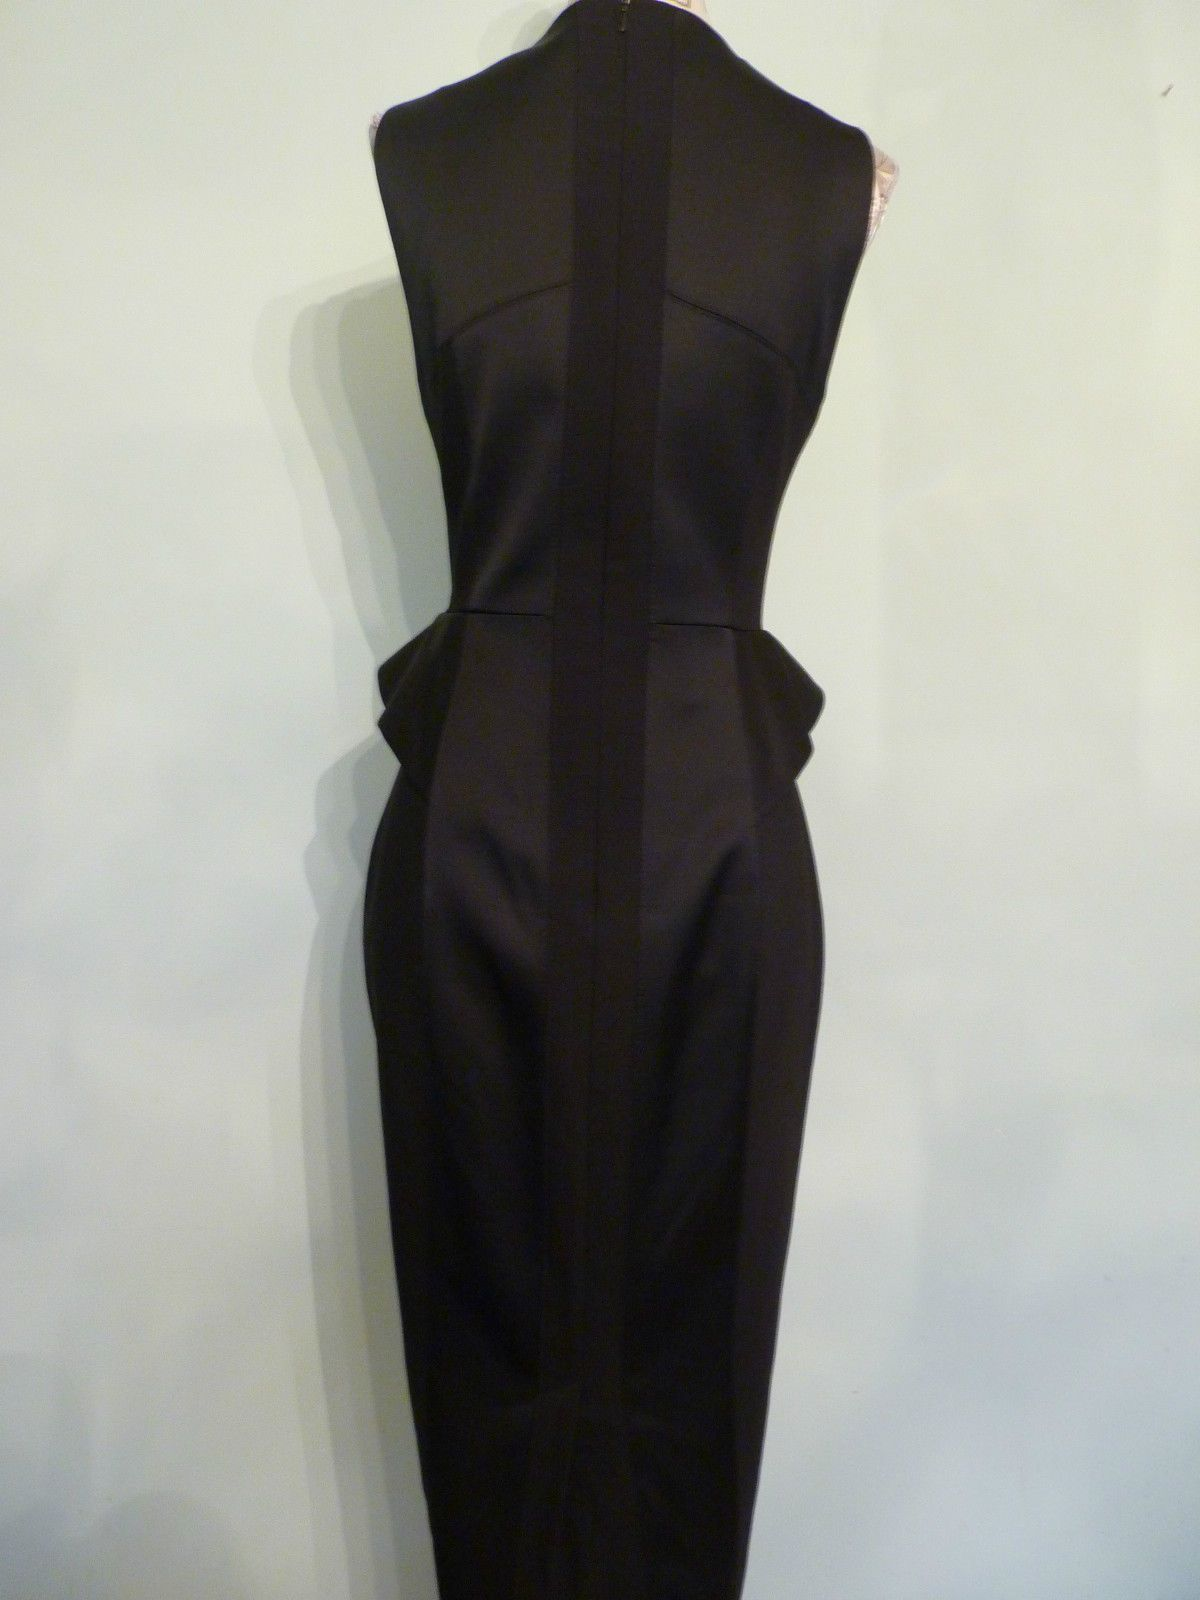 Stunning Authentic Black Wiggle Dress By Karen Millen Size 10 Ebay